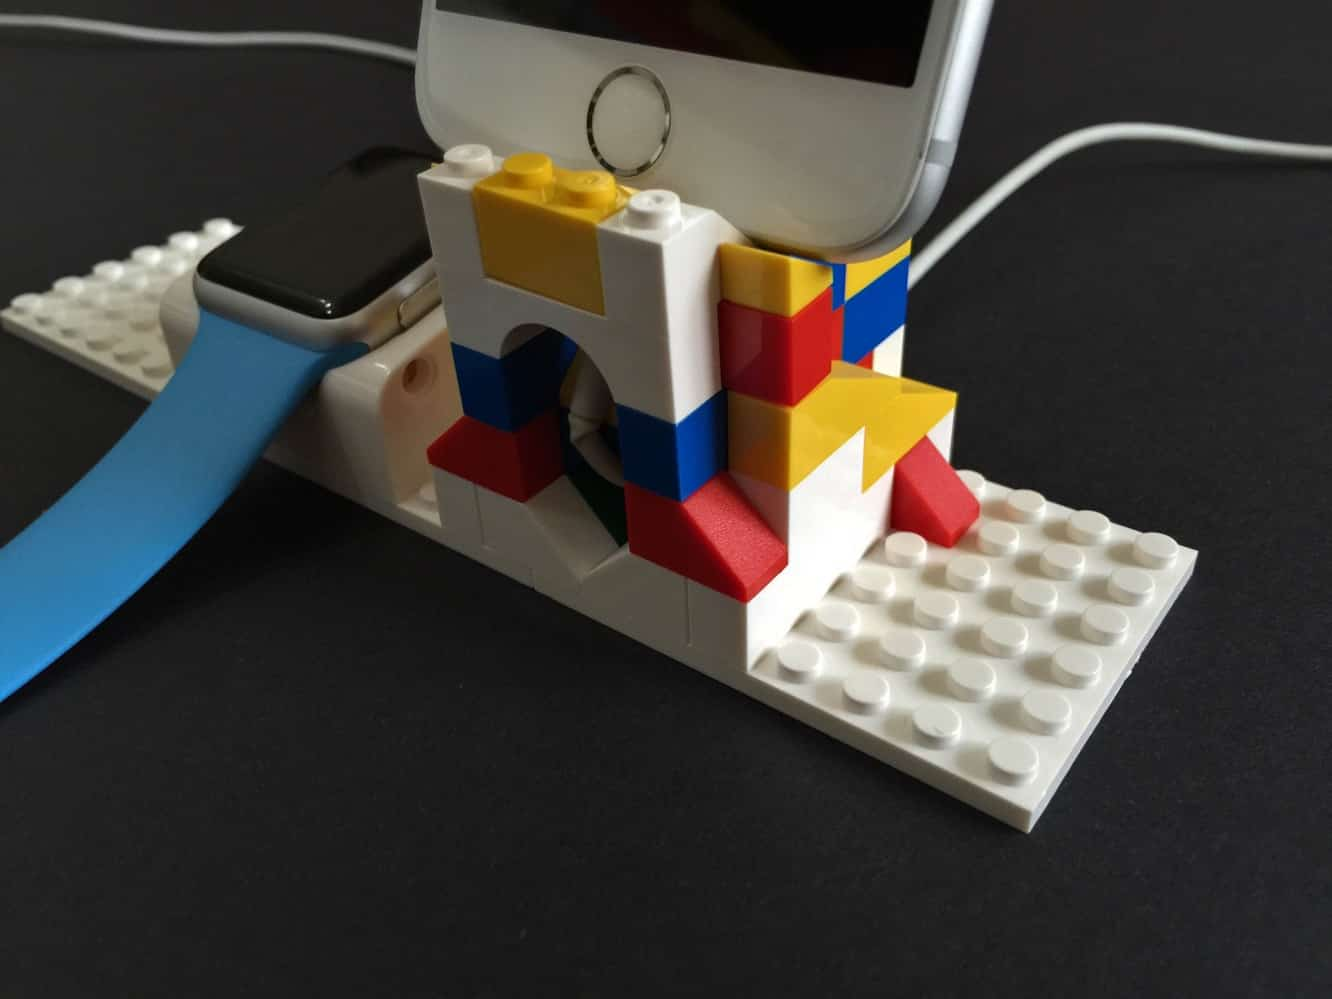 Review: SwitchEasy Blocks Customizable Dock Building Set for Apple Watch